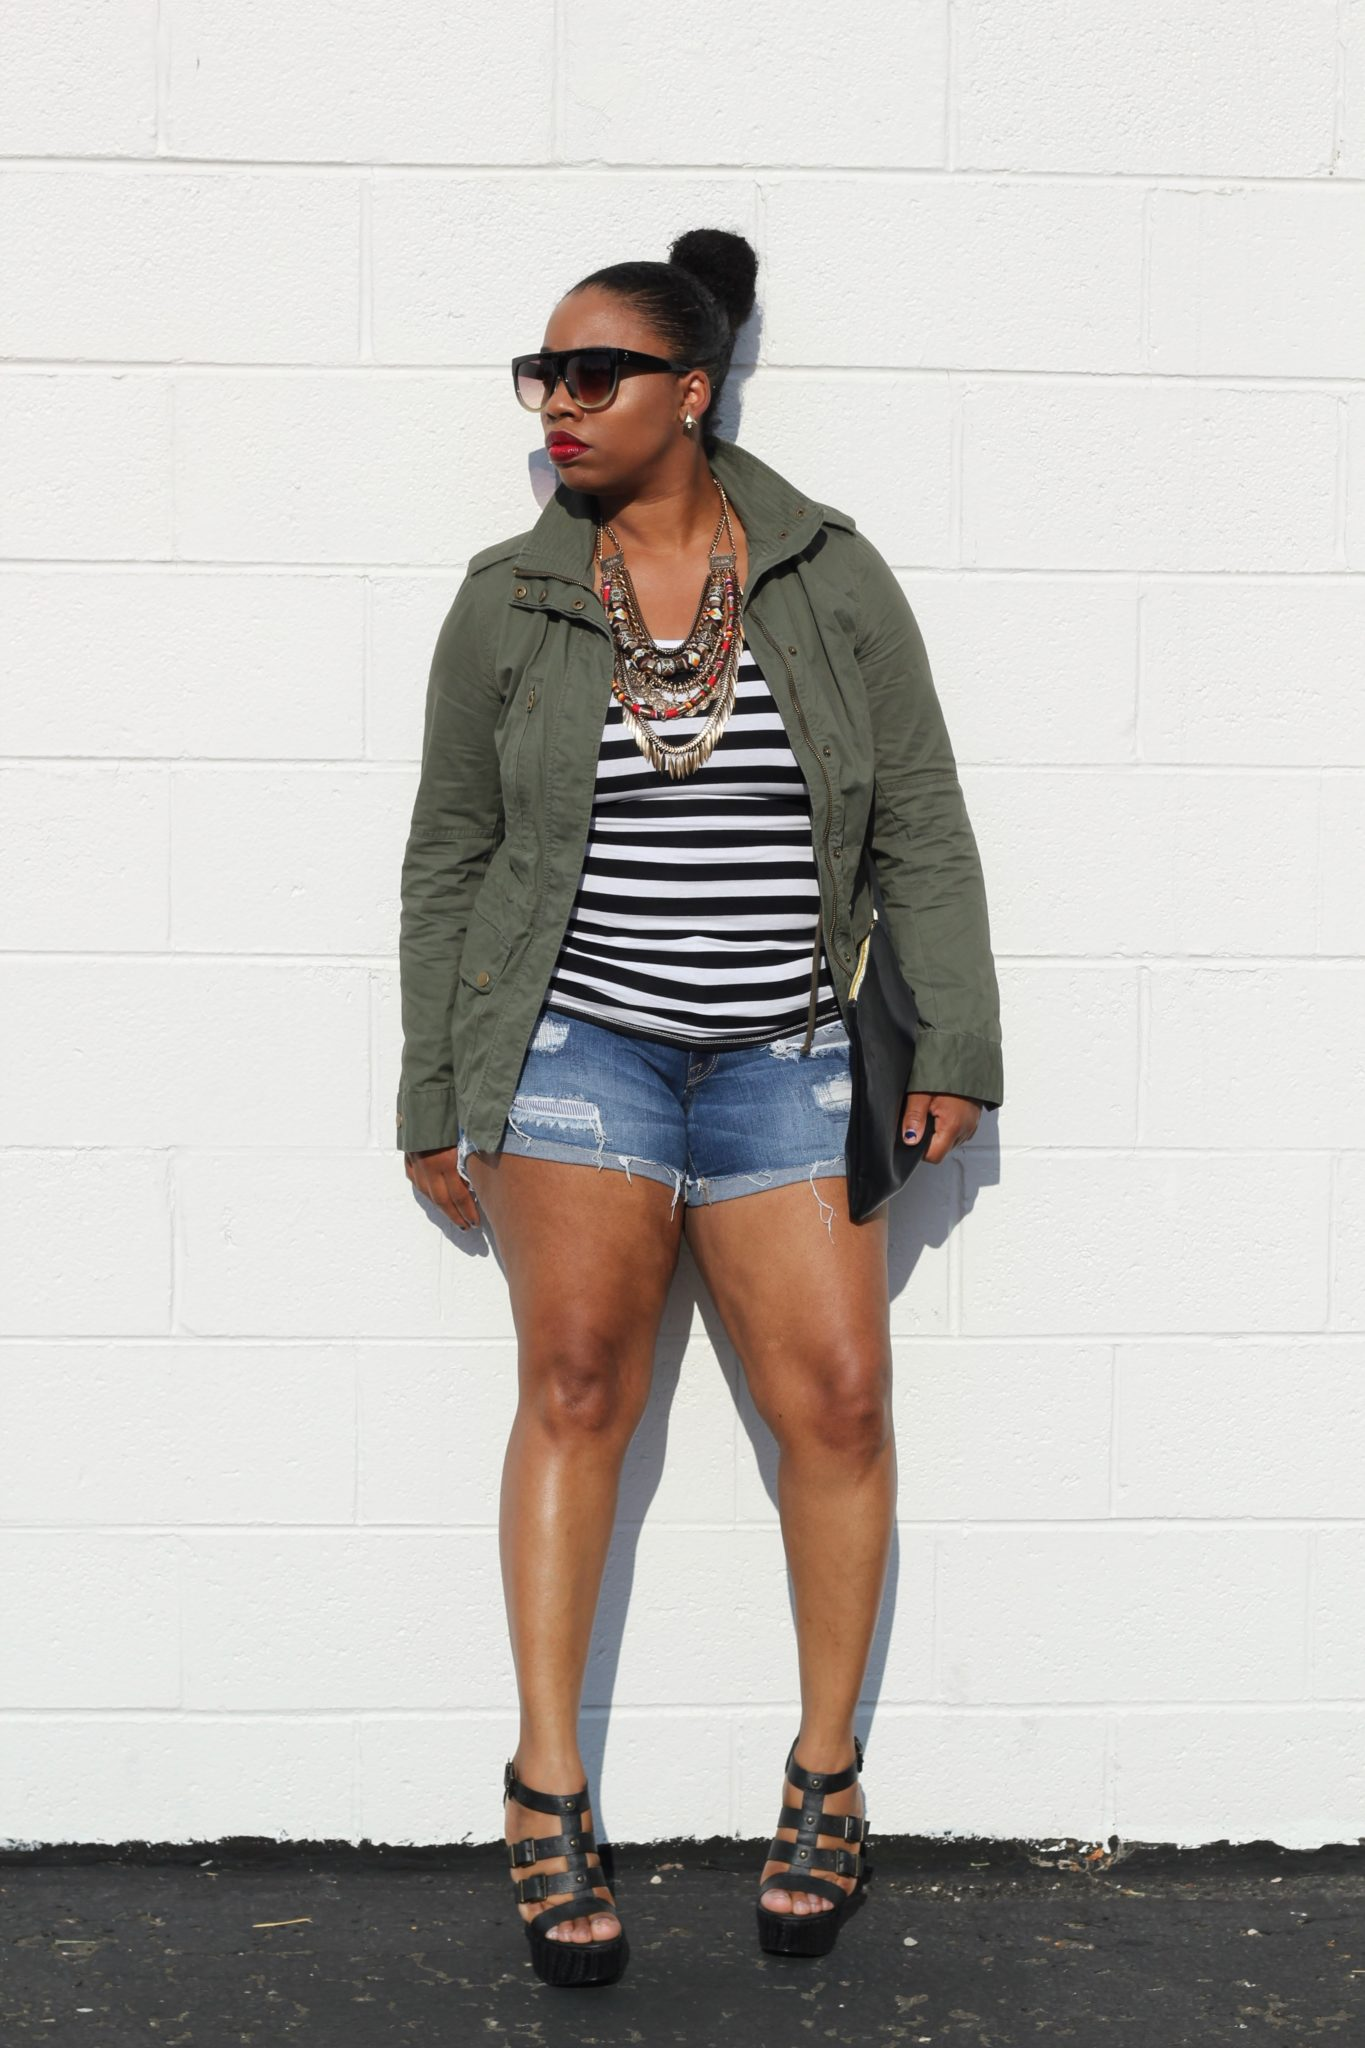 img_6460 Hot Days & Cooler NightsAldo Shoes American Apparel eBay Fashion Fashion Nova how to Jessica Simpson Shoes OOTD shopping Style How To's: Style Inspiration Stylewatch Styling Target Target Style Uncategorized